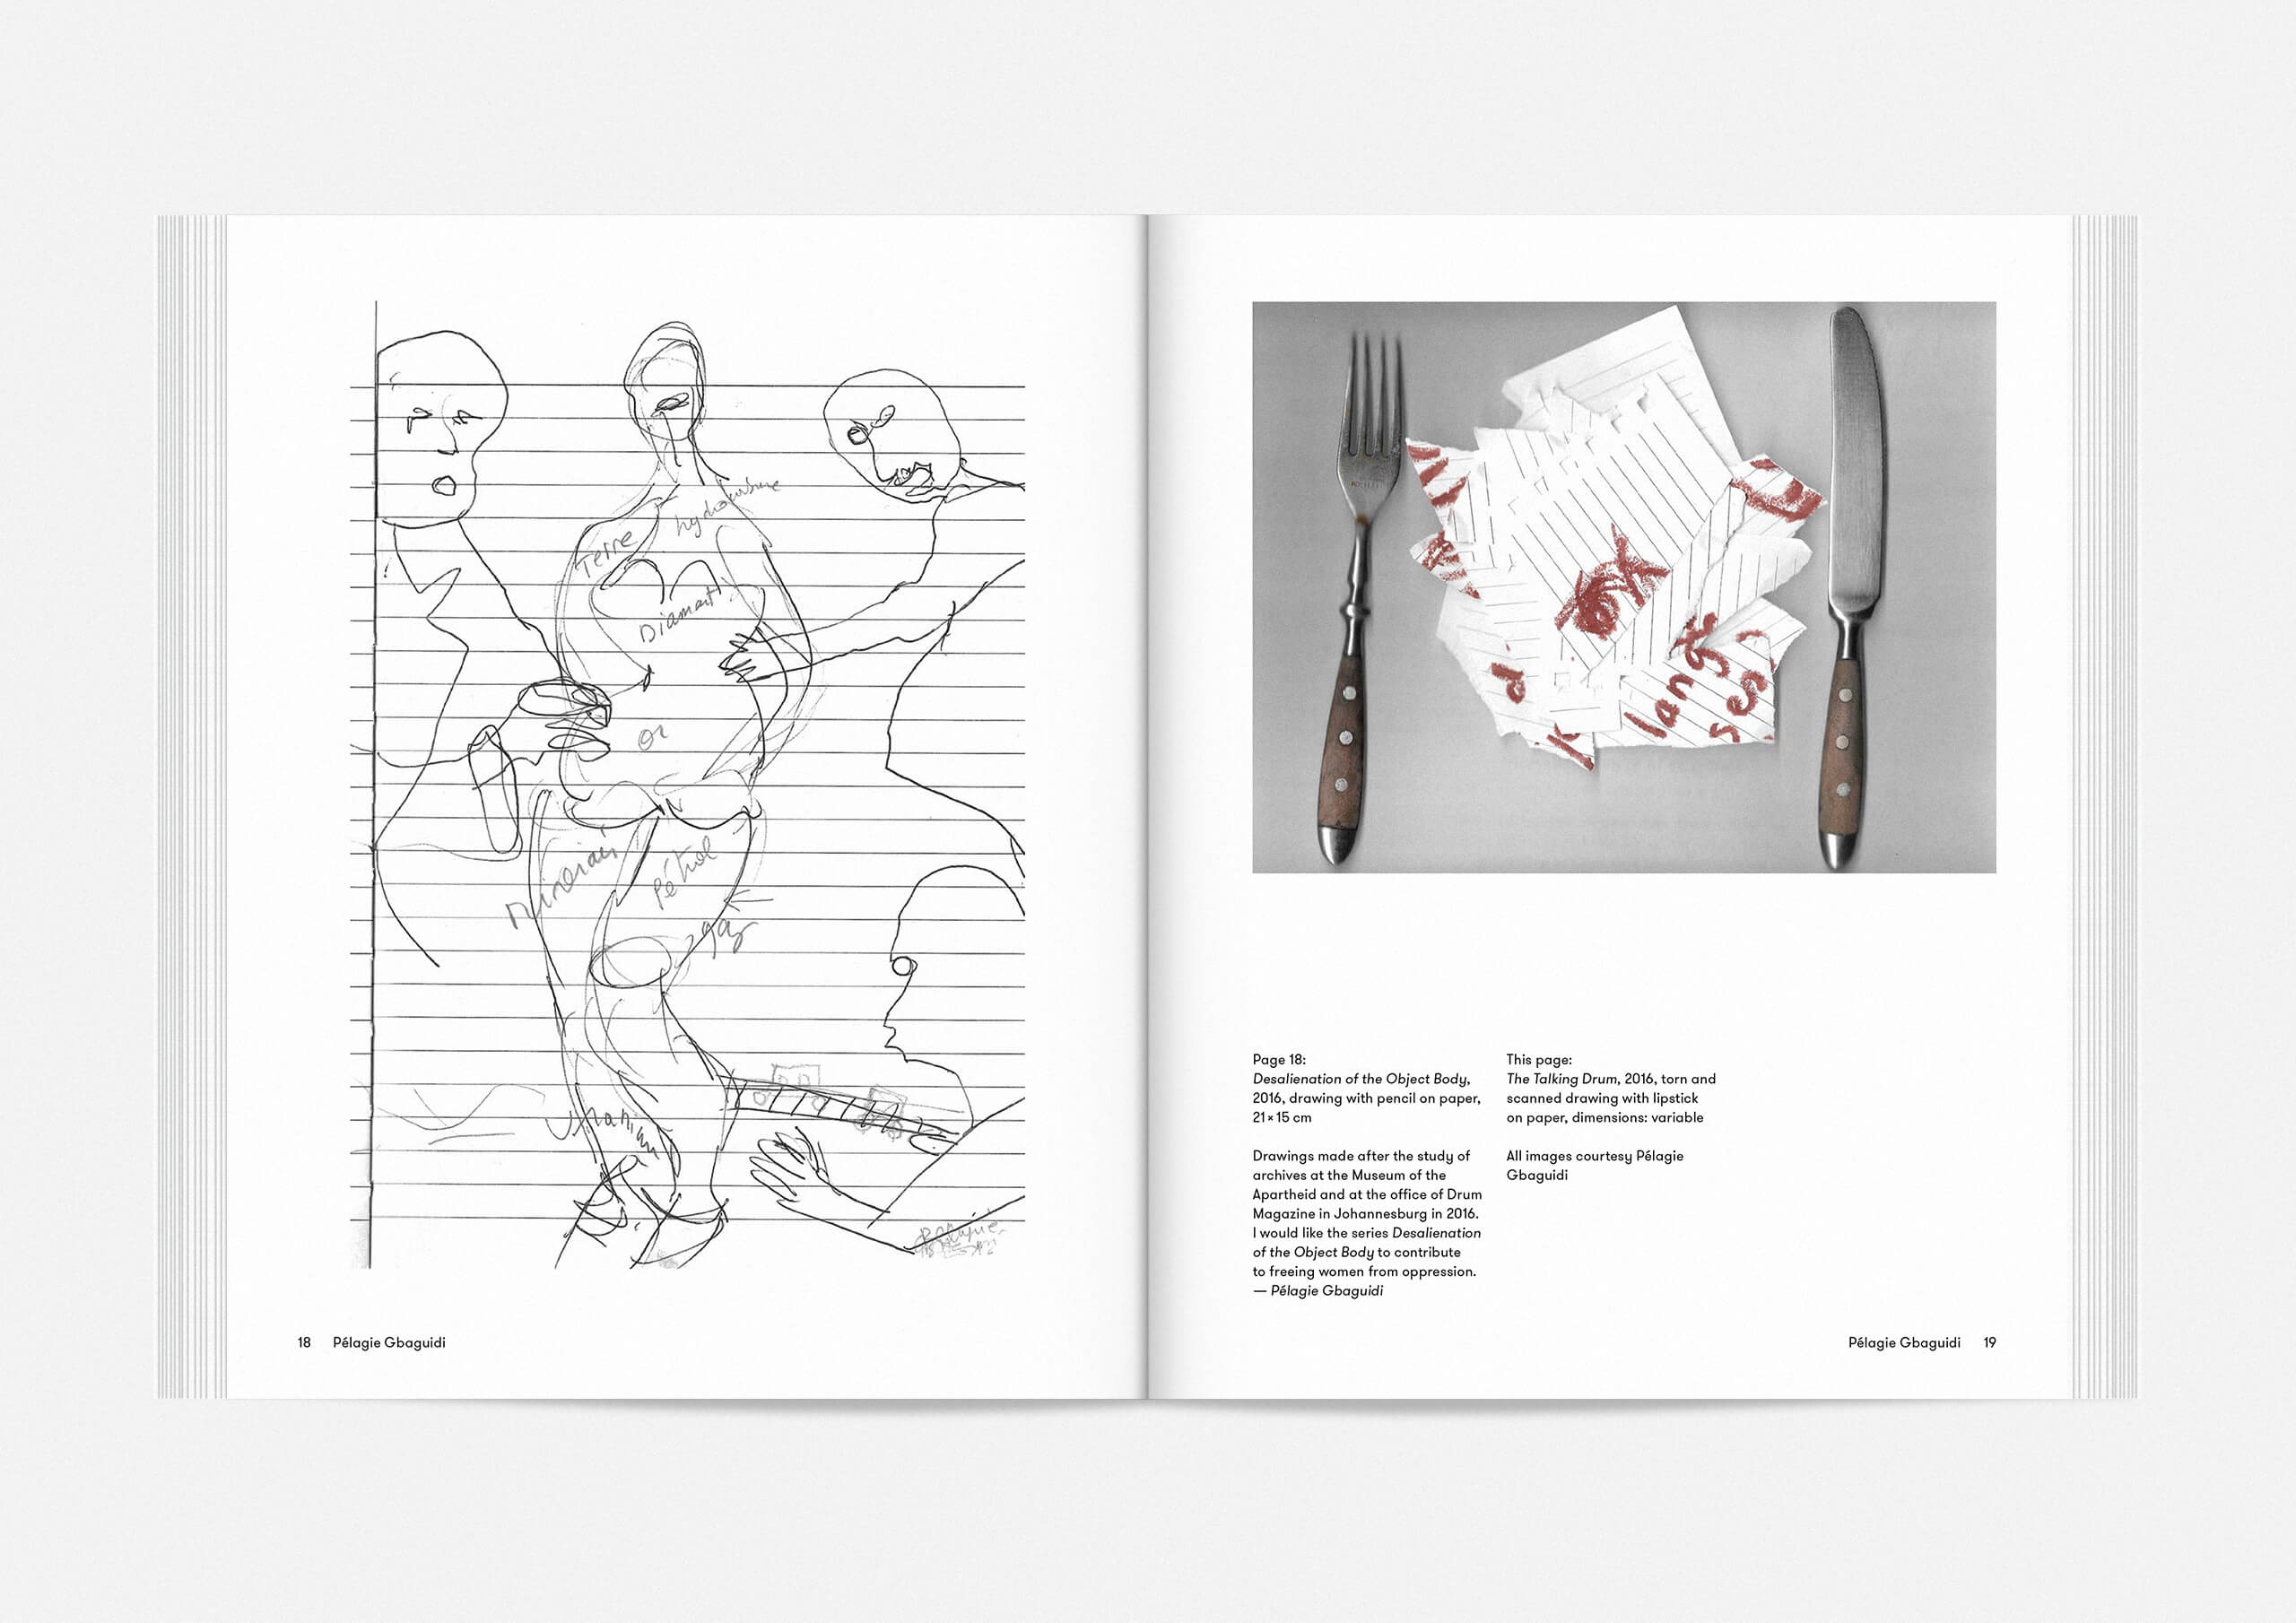 http://neuegestaltung.de/media/pages/clients/protocollum-issue-no-05/544254bd58-1597415144/protocollum-5-page-1819-ng.jpg